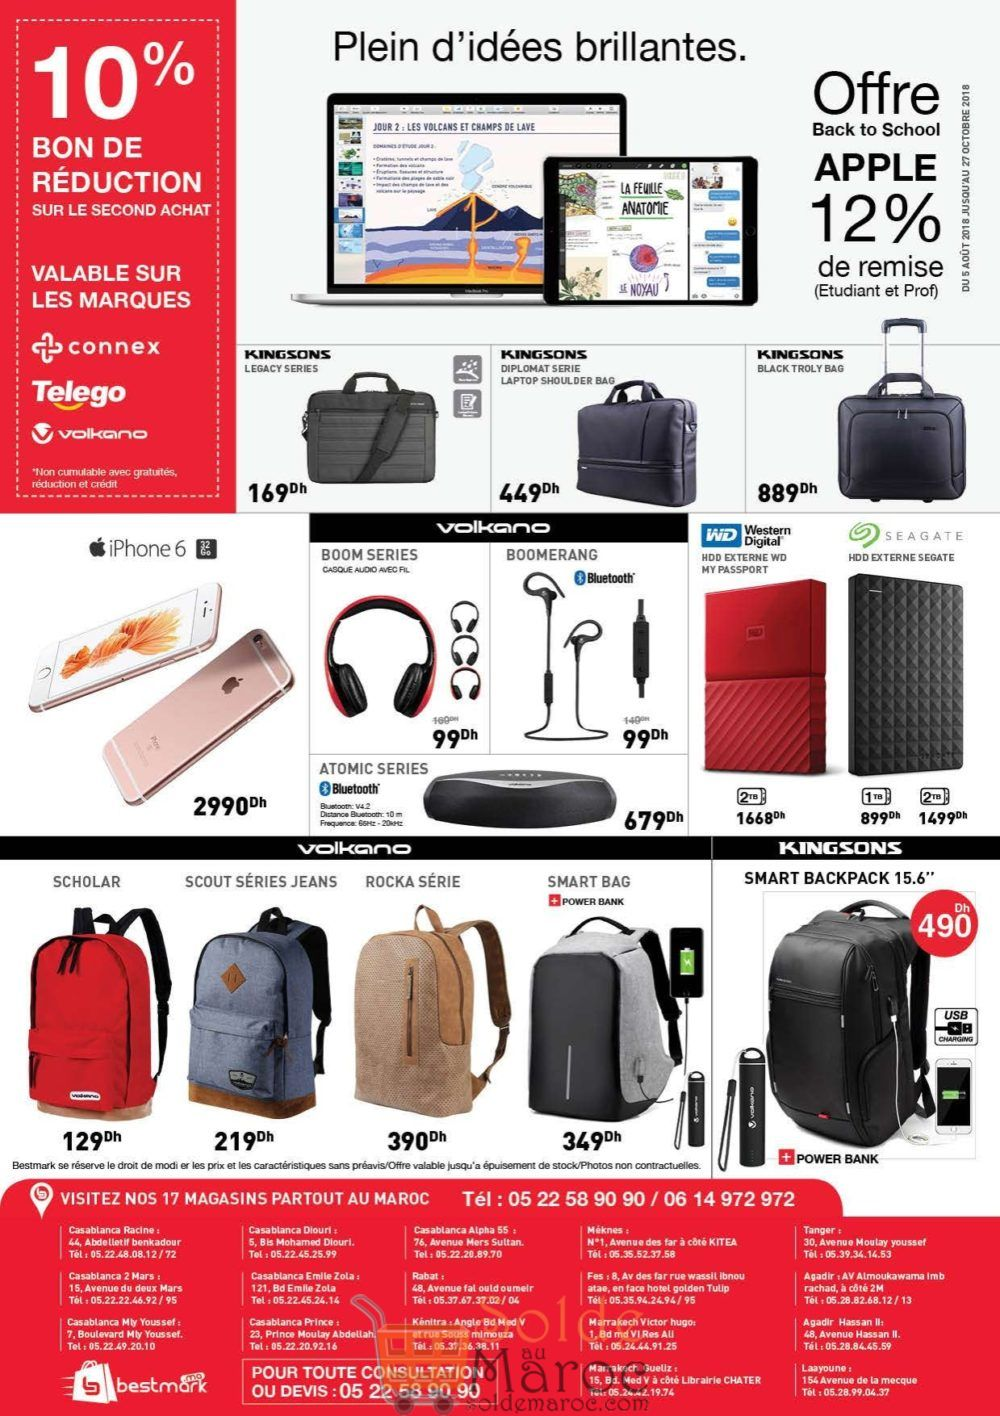 Catalogue Bestmark Back to School